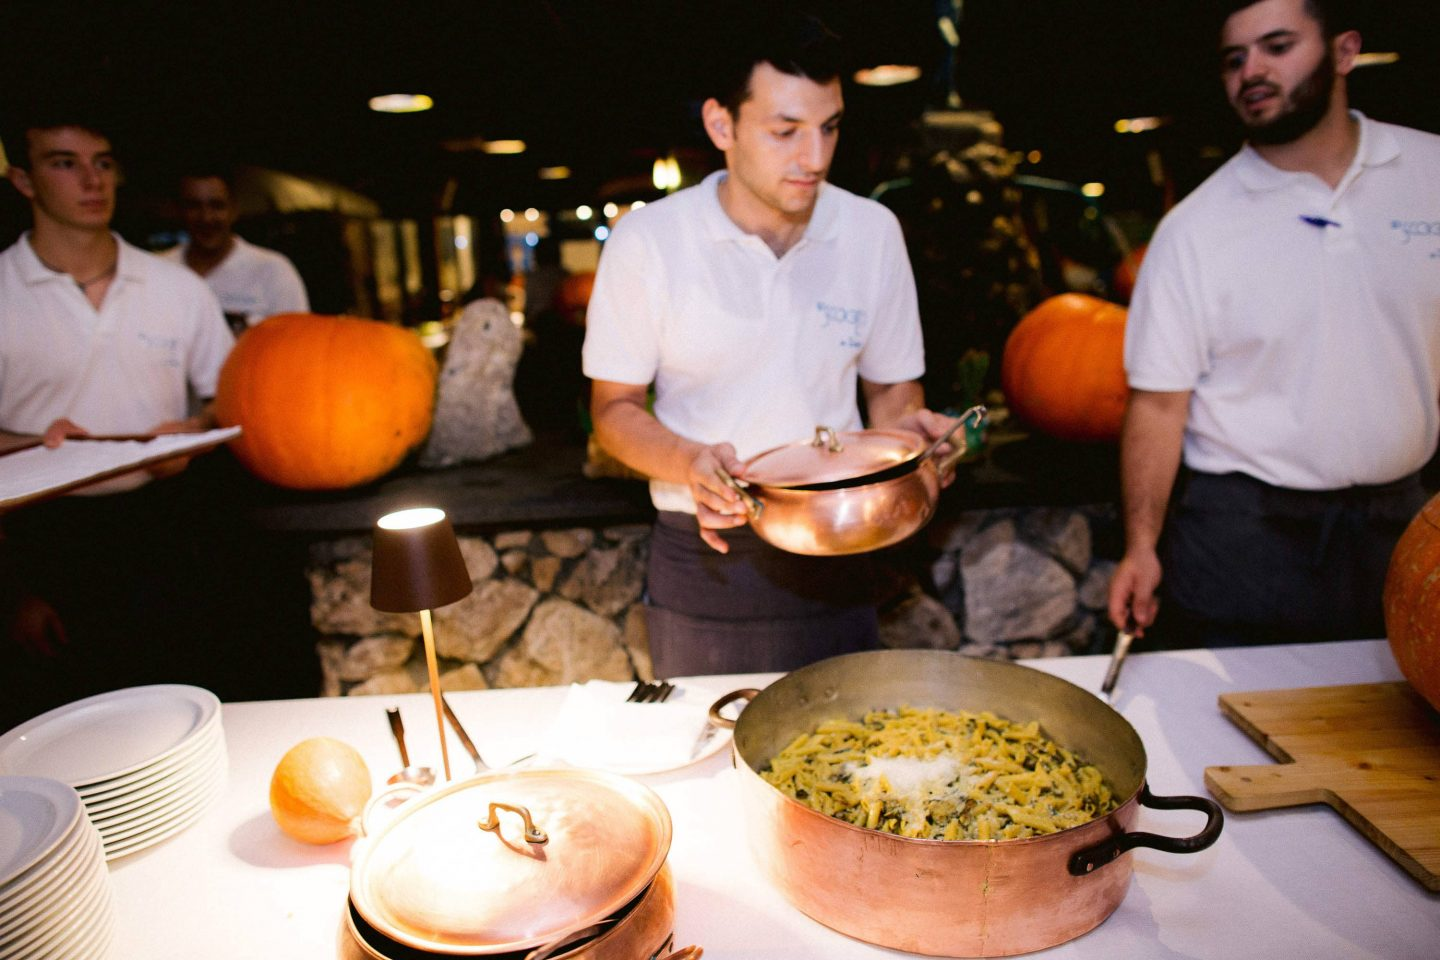 Welcome party food at this Amalfi Coast wedding weekend held Lo Scoglio | Photo by Allan Zepeda